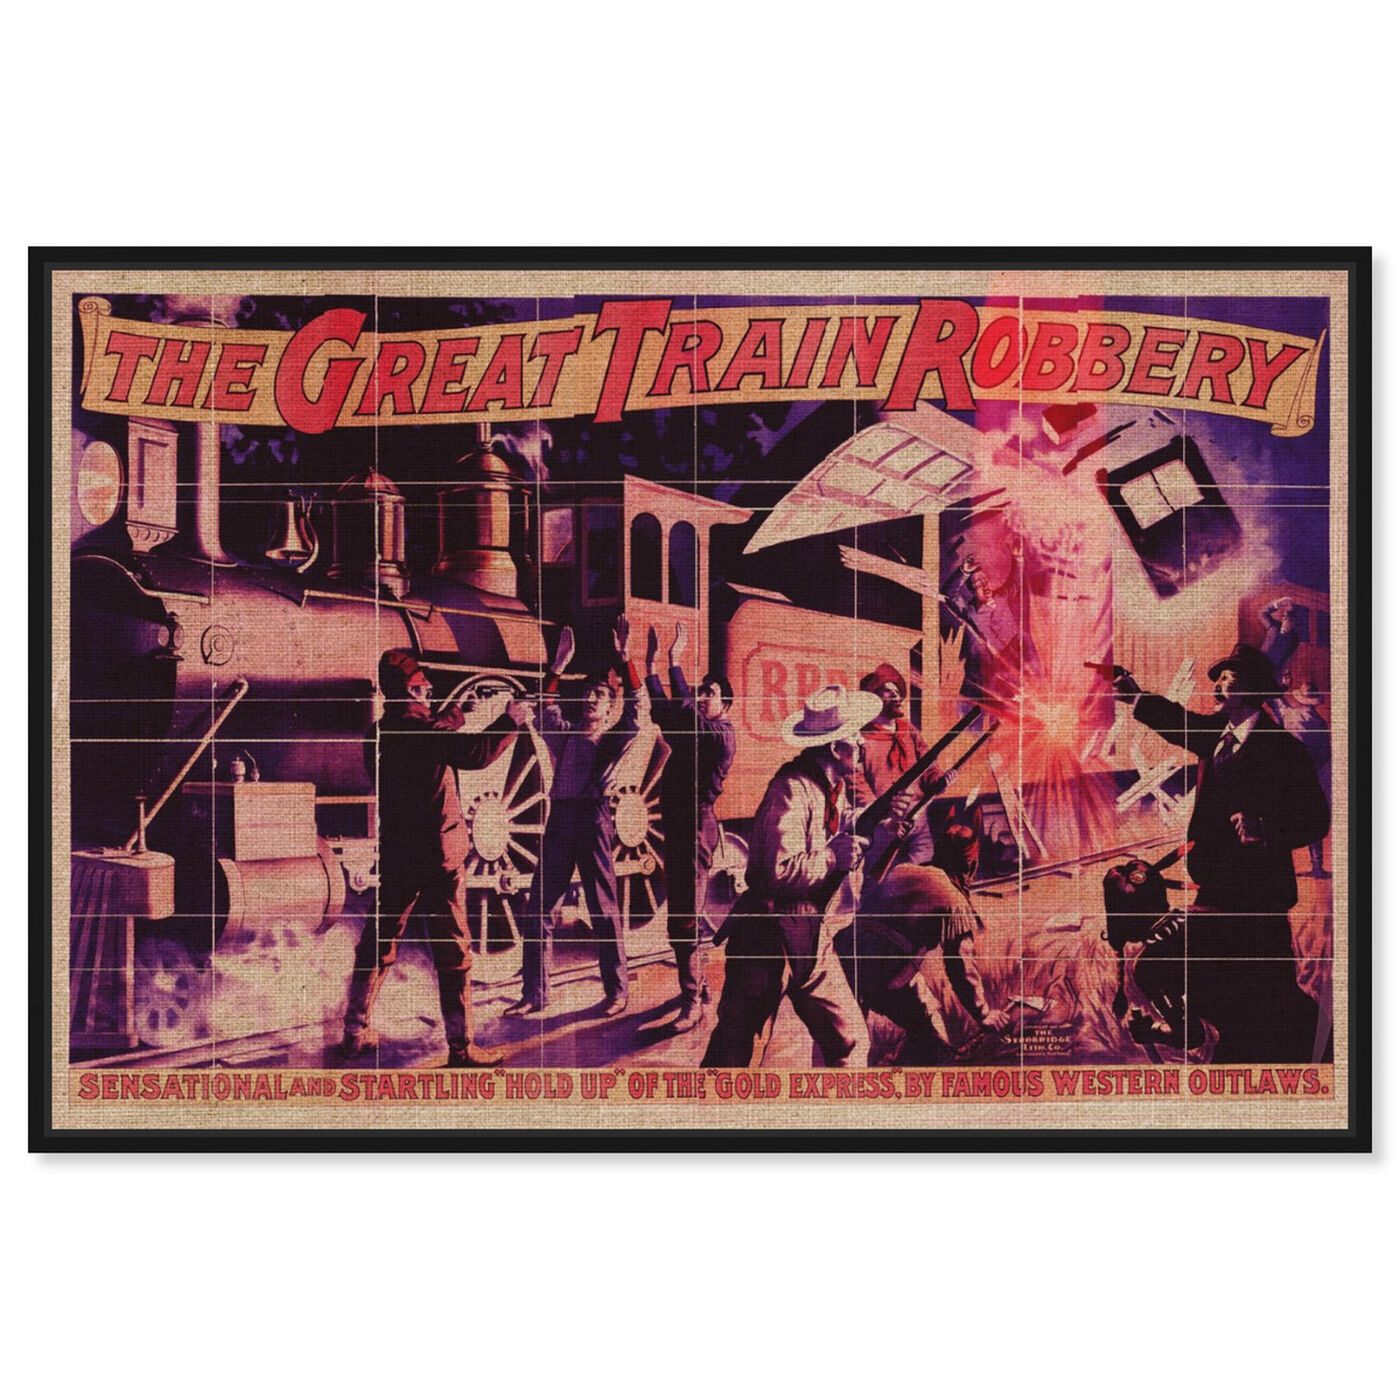 Front view of Great Train Robbery featuring advertising and posters art.